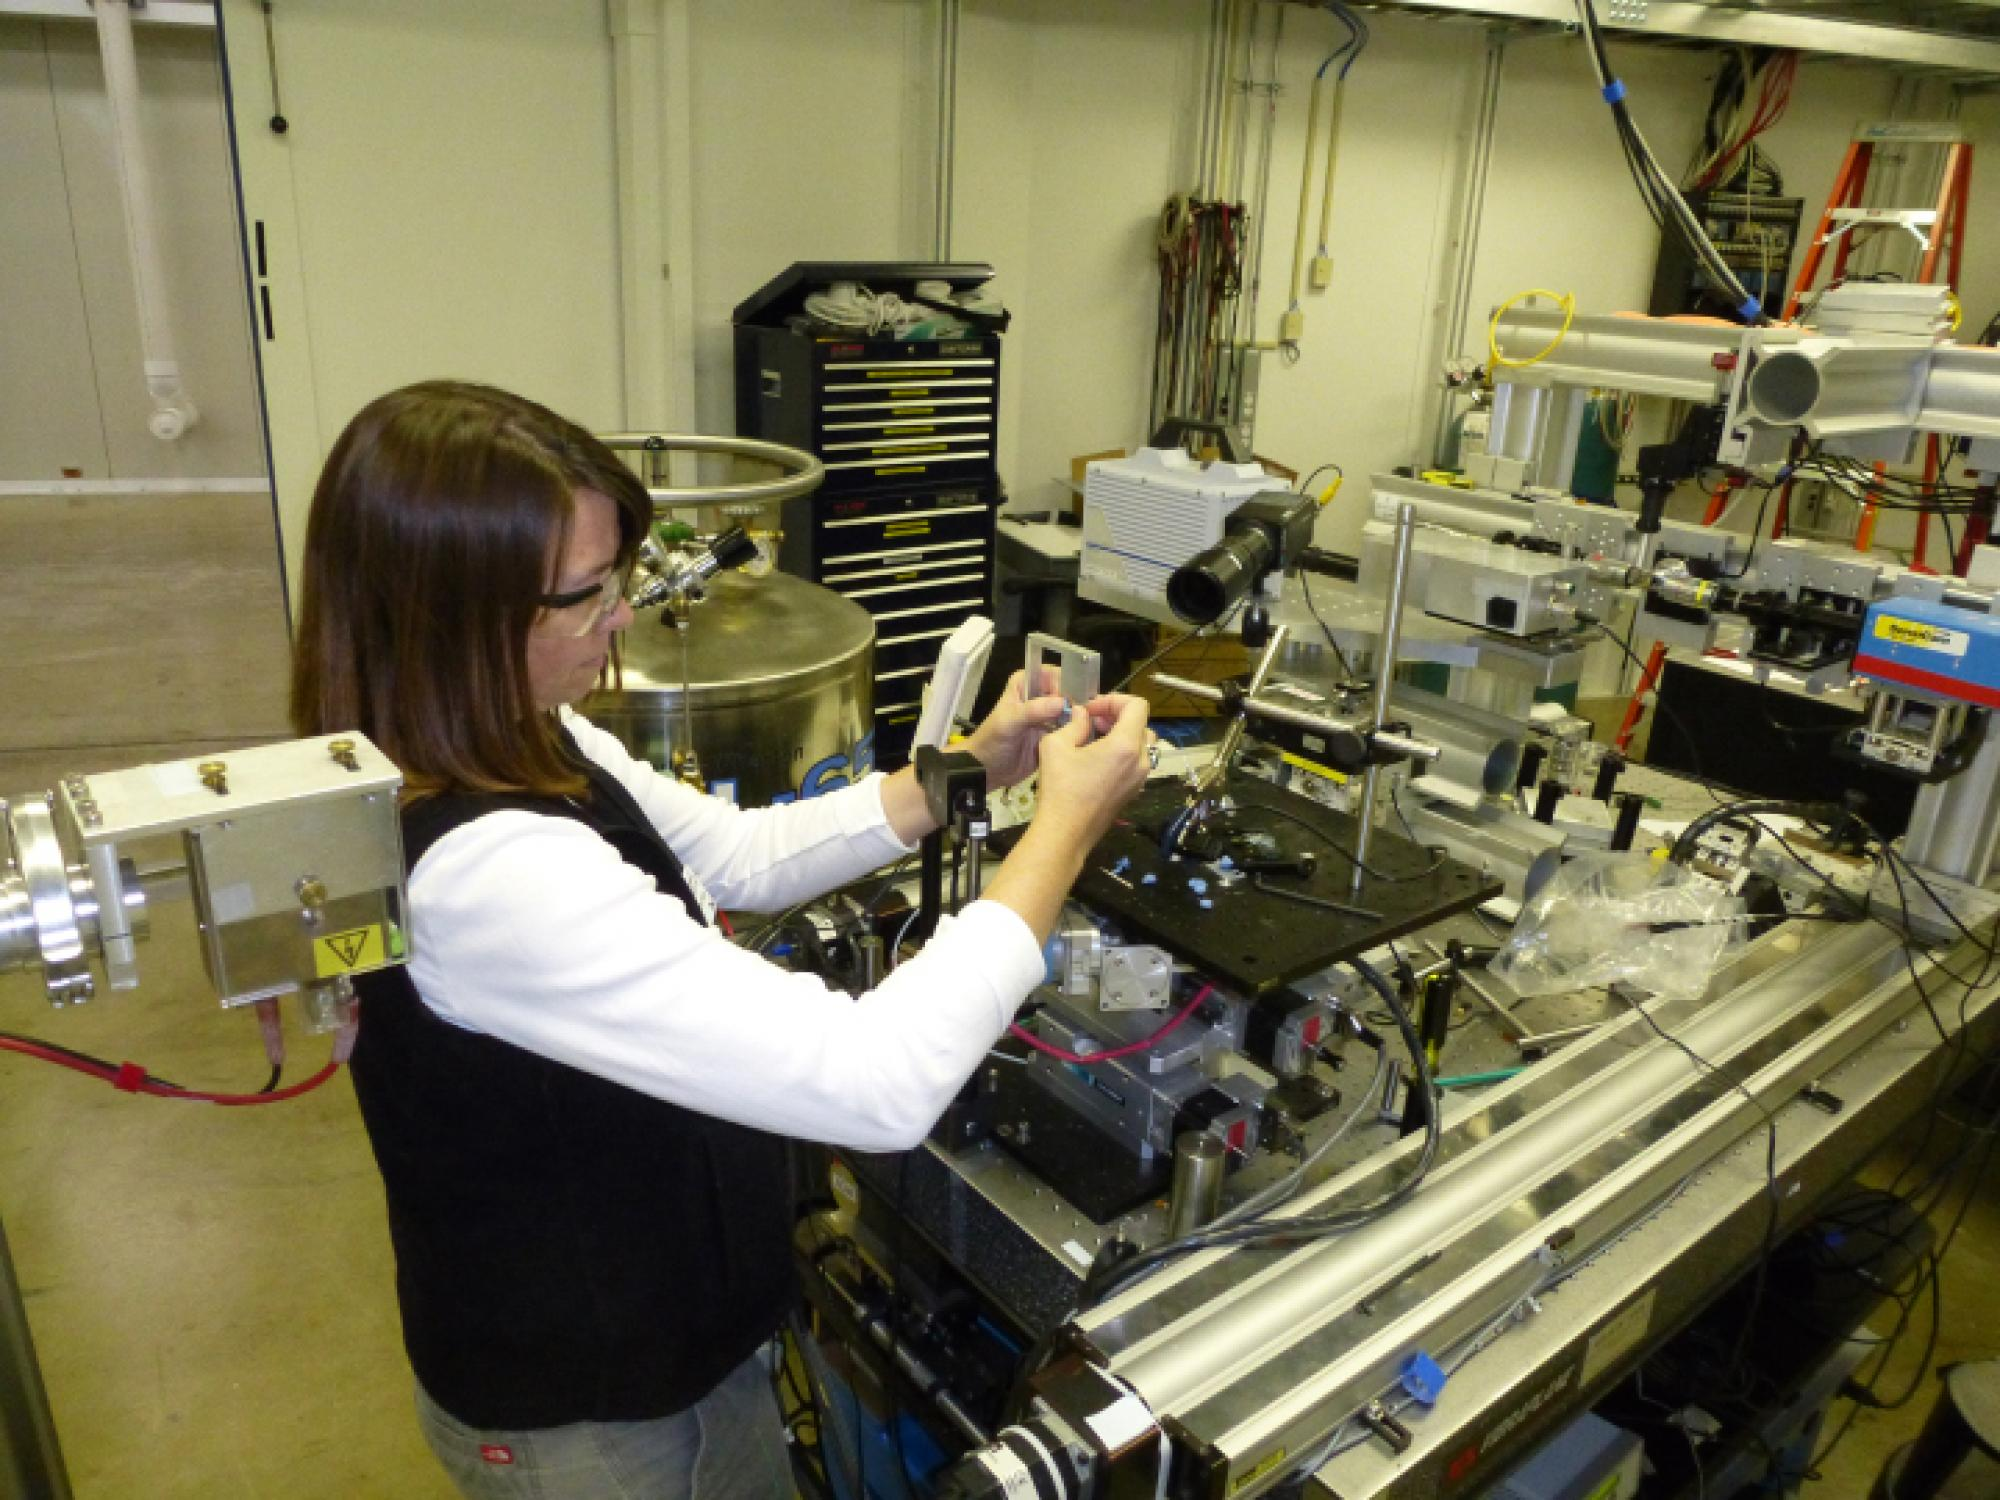 Wendy Moore prepares an experiment to study bombardier beetles' blasting sequence with high-powered X-rays at Argonne National Laboratory.